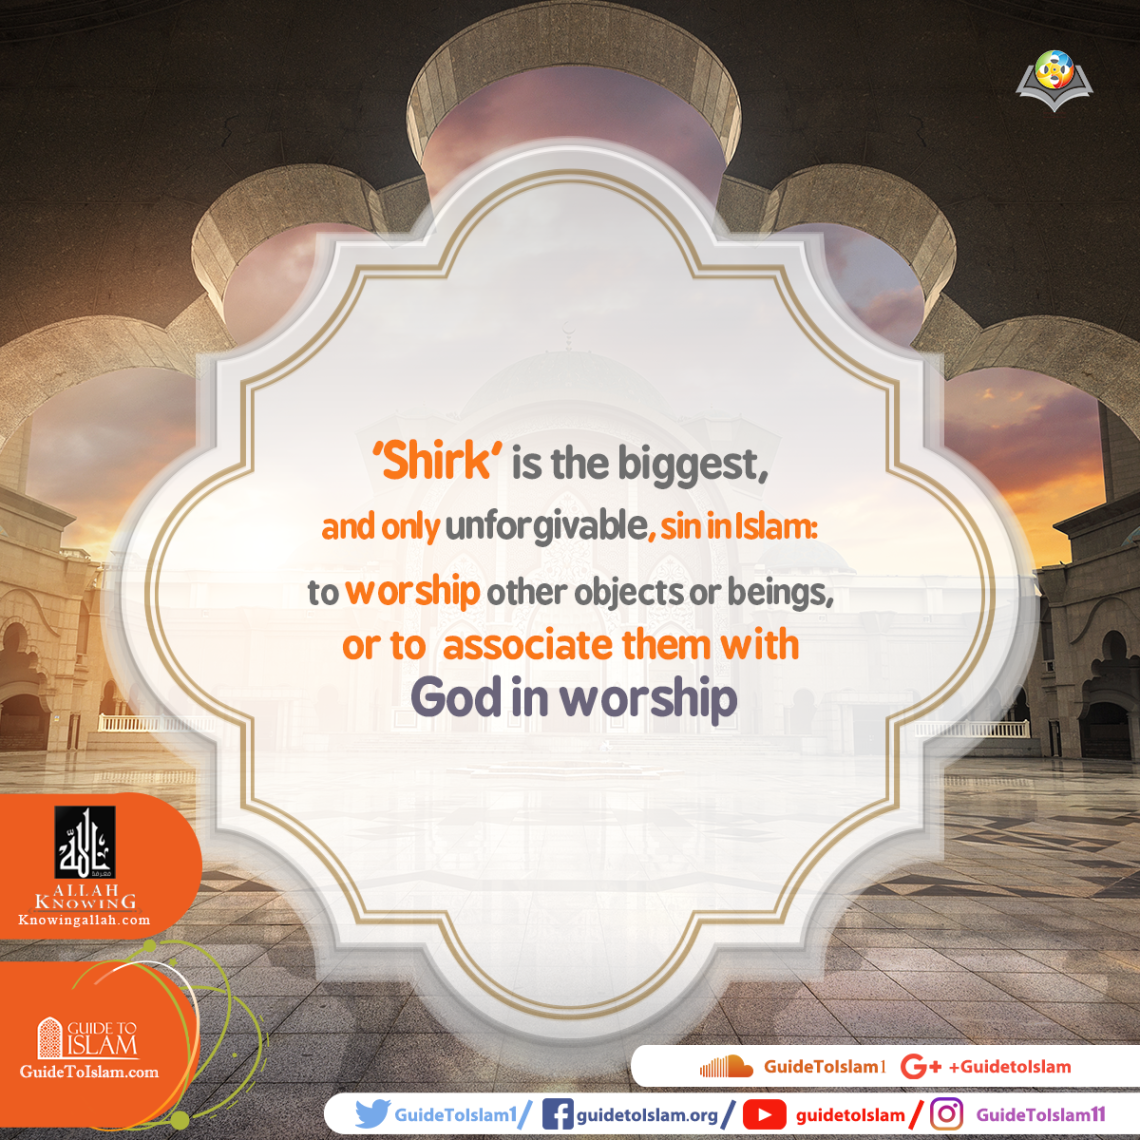 'Shirk' is the biggest, and only unforgivable, sin in Islam